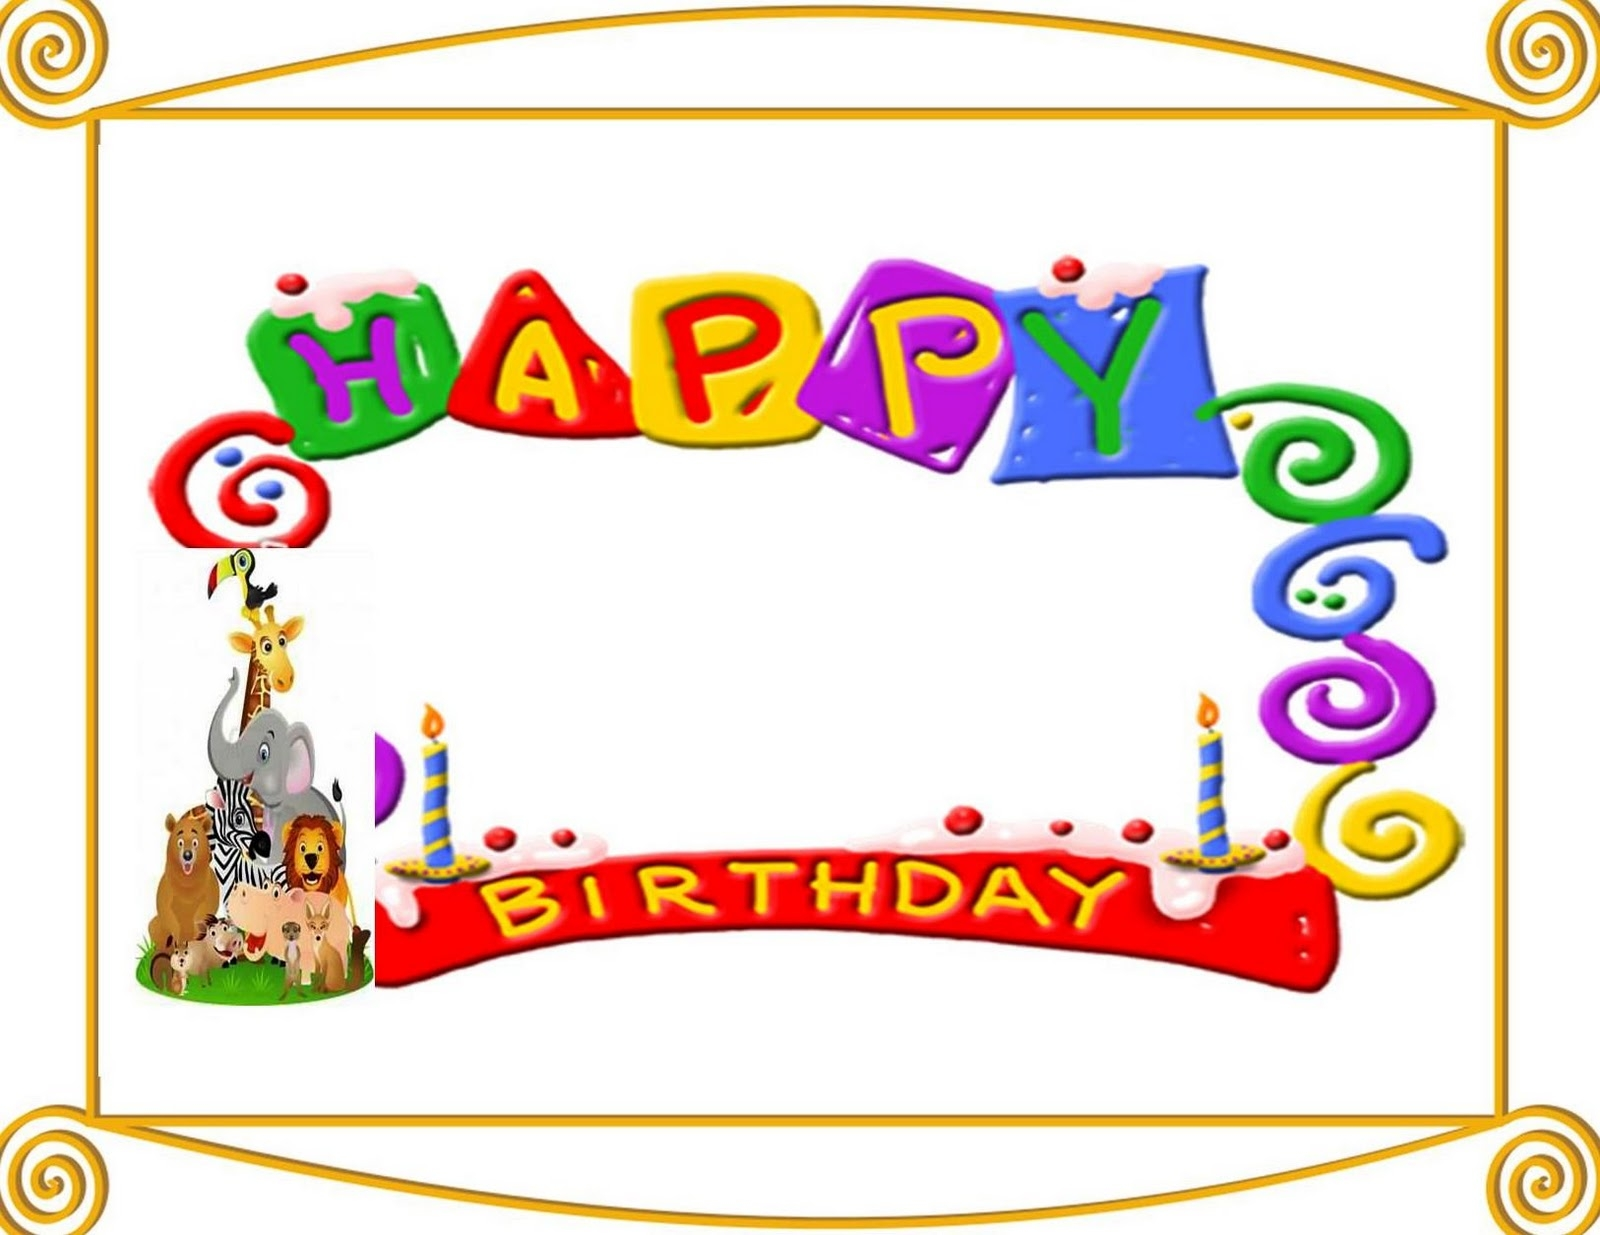 Free Birthday Card Cliparts, Download Free Clip Art, Free Clip Art.